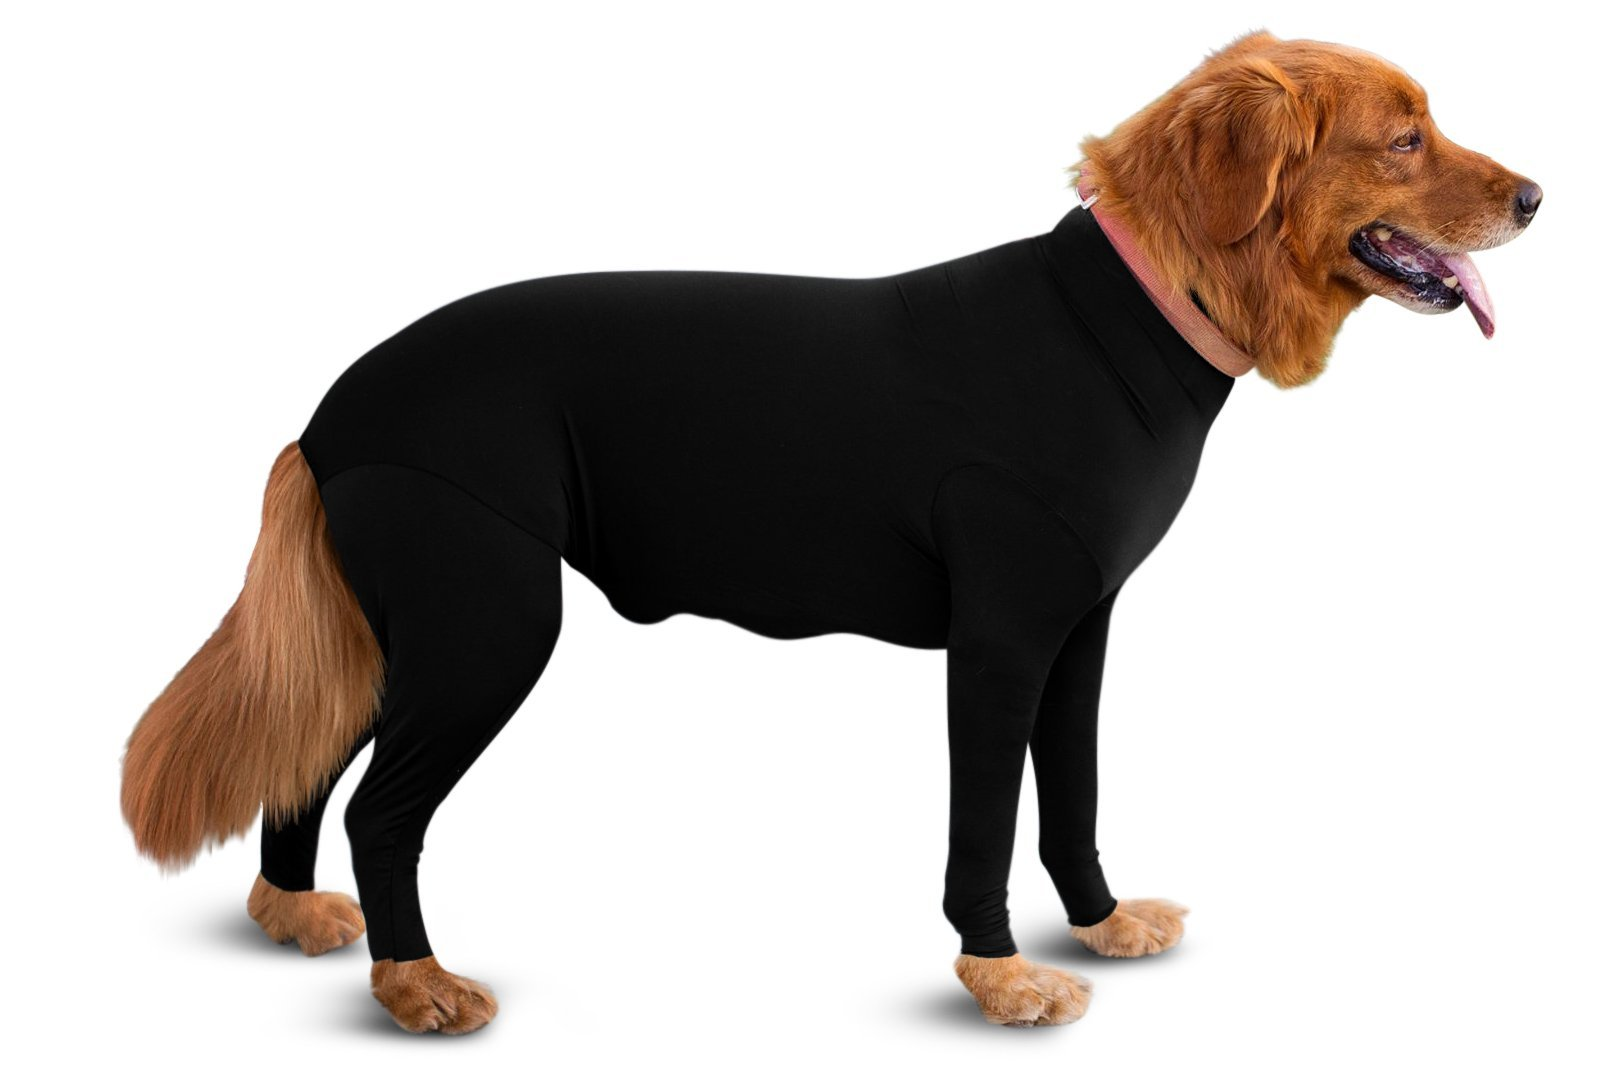 Shed Defender - Dog Onesie/Grooming -Contains The Shedding Dog Hair, Reduce Anxiety, Replace Medical Cone